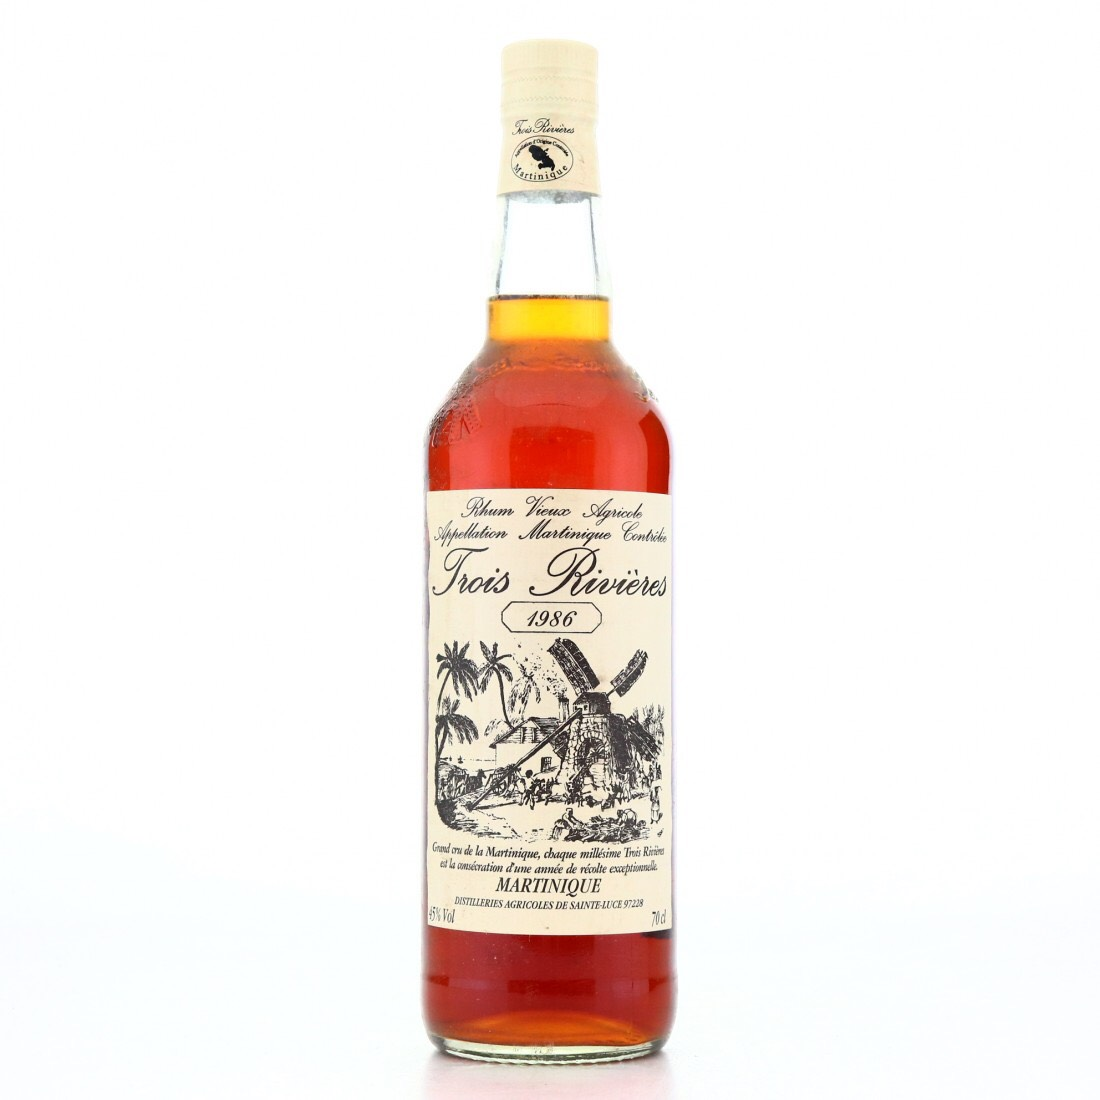 Bottle image of 1986